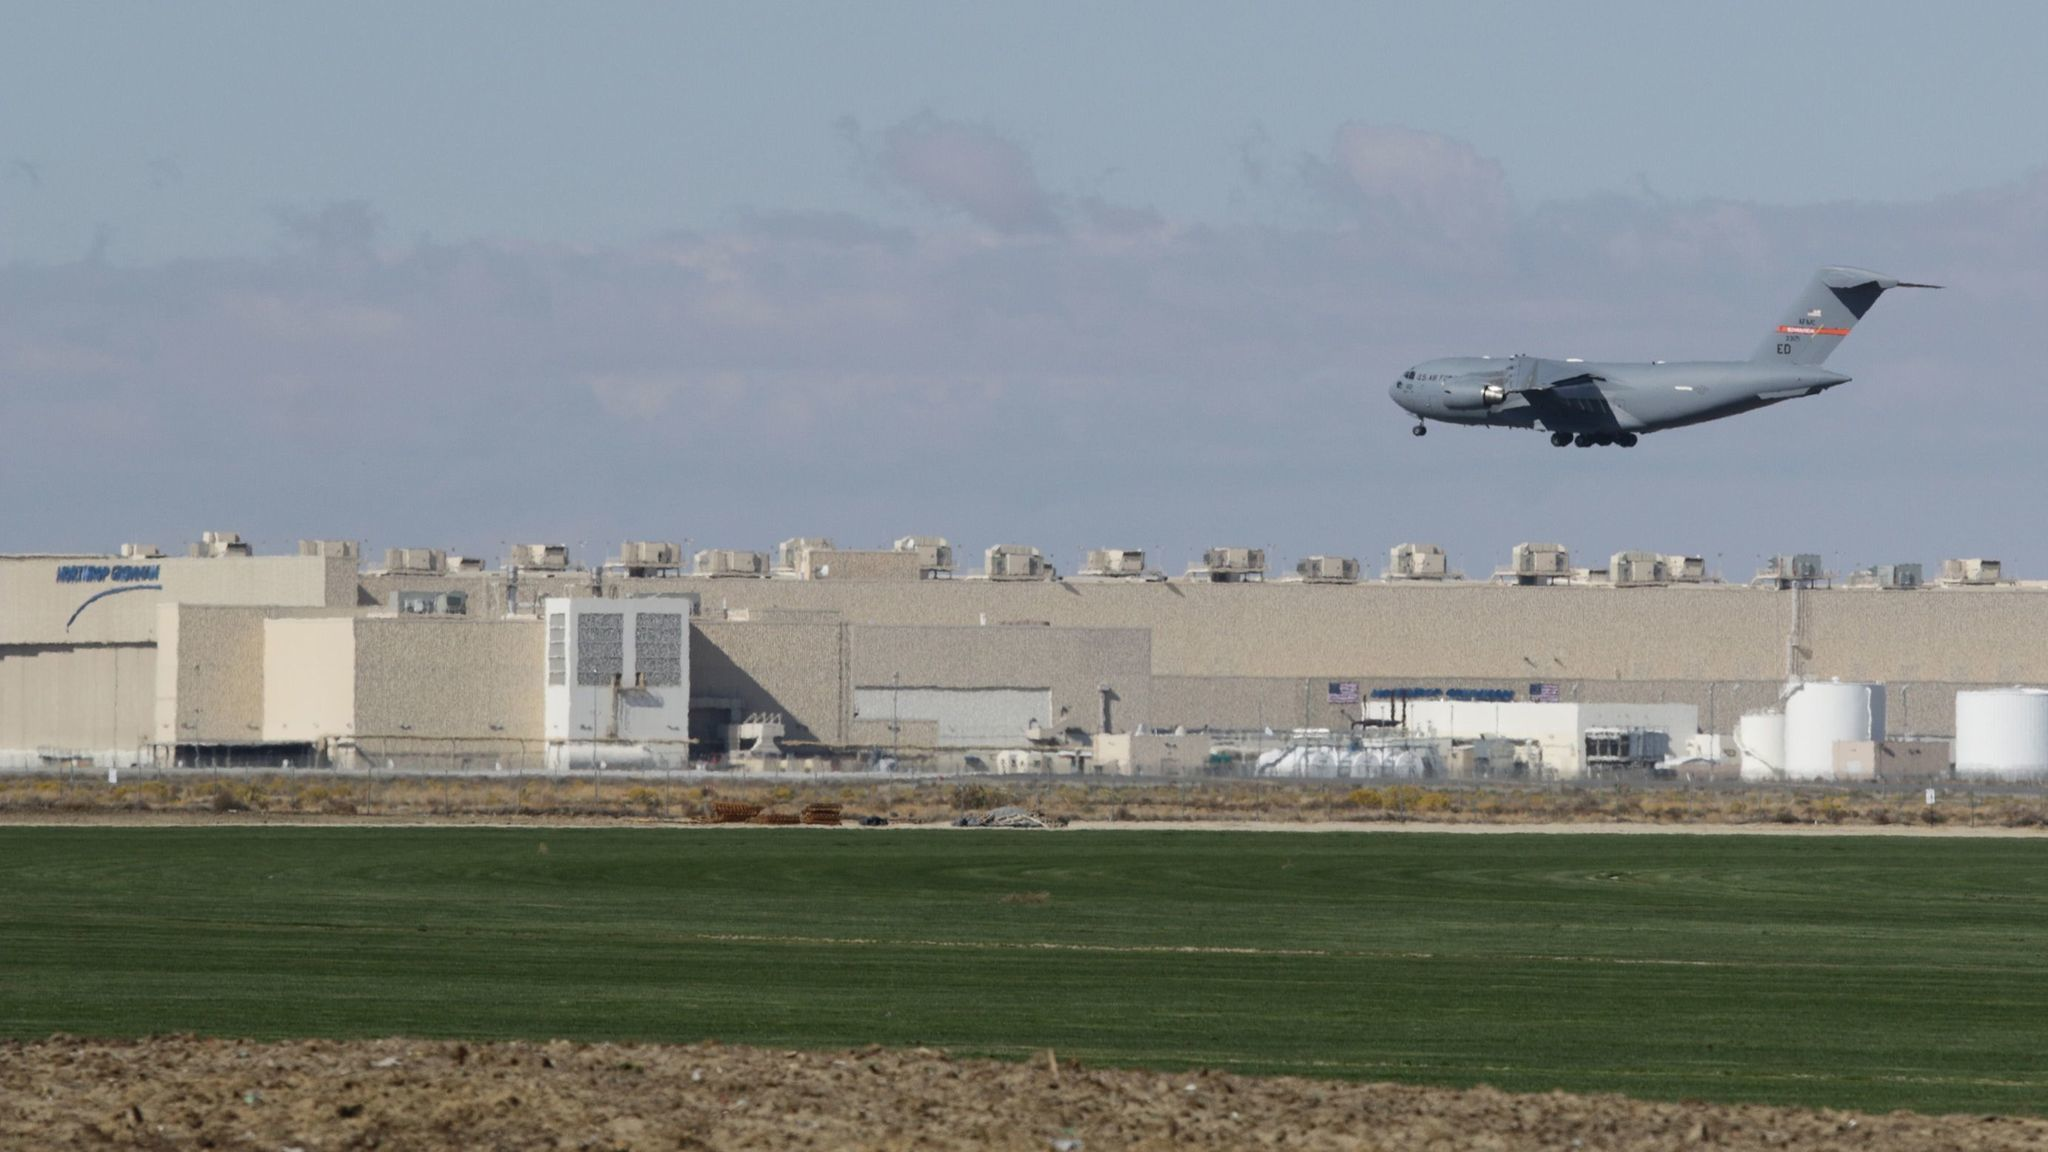 A Boeing C-17 Globemaster III lands at Palmdale Regional Airport during recent exercise flights. Northrop Grumman (background) was awarded the new B-21 bomber contract in 2015.